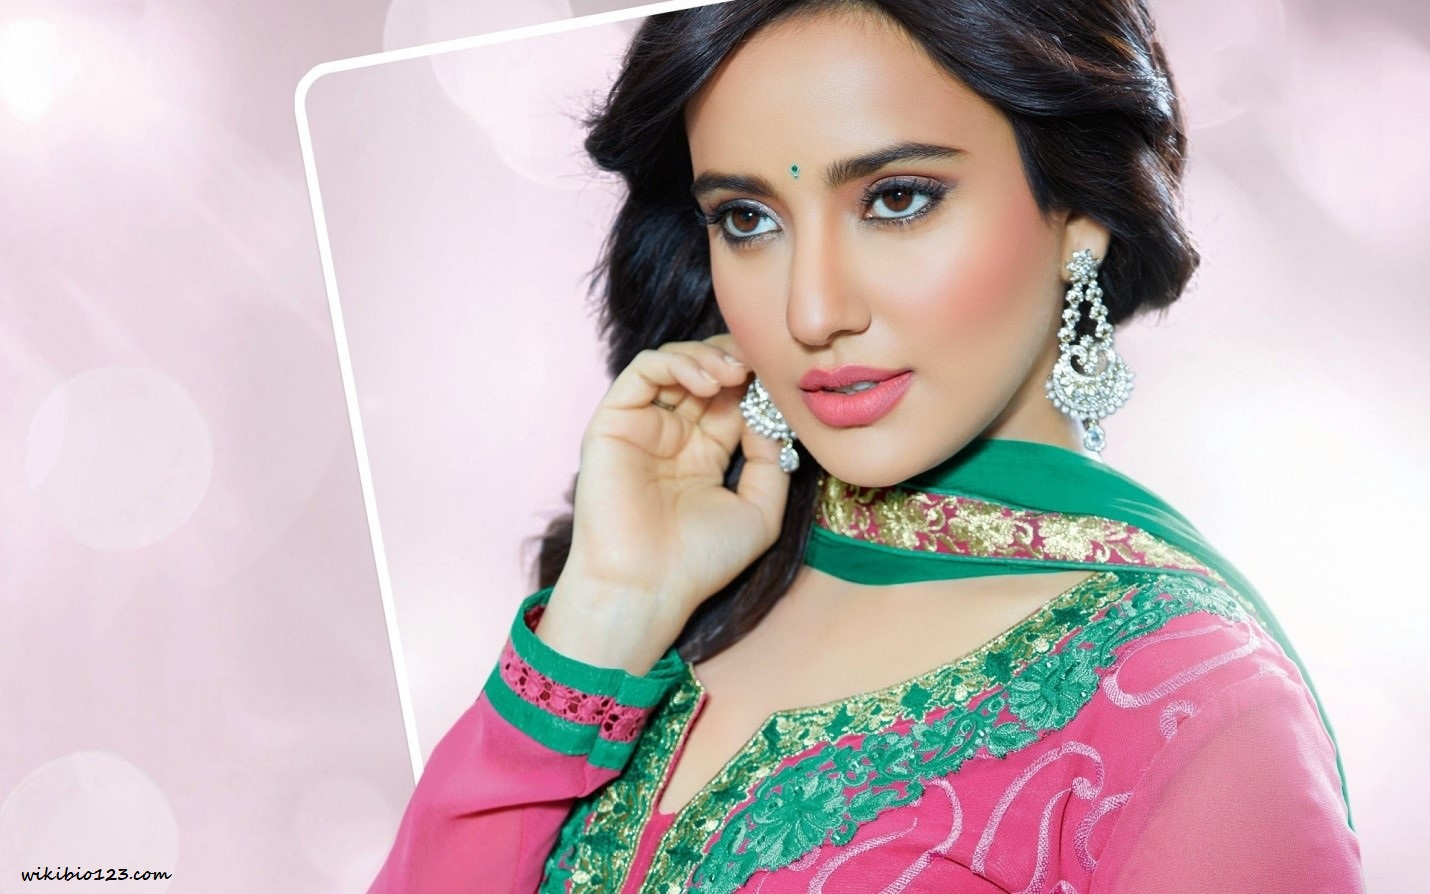 Neha Sharma wiki Bio Age Figure size Height HD Images Wallpapers Download